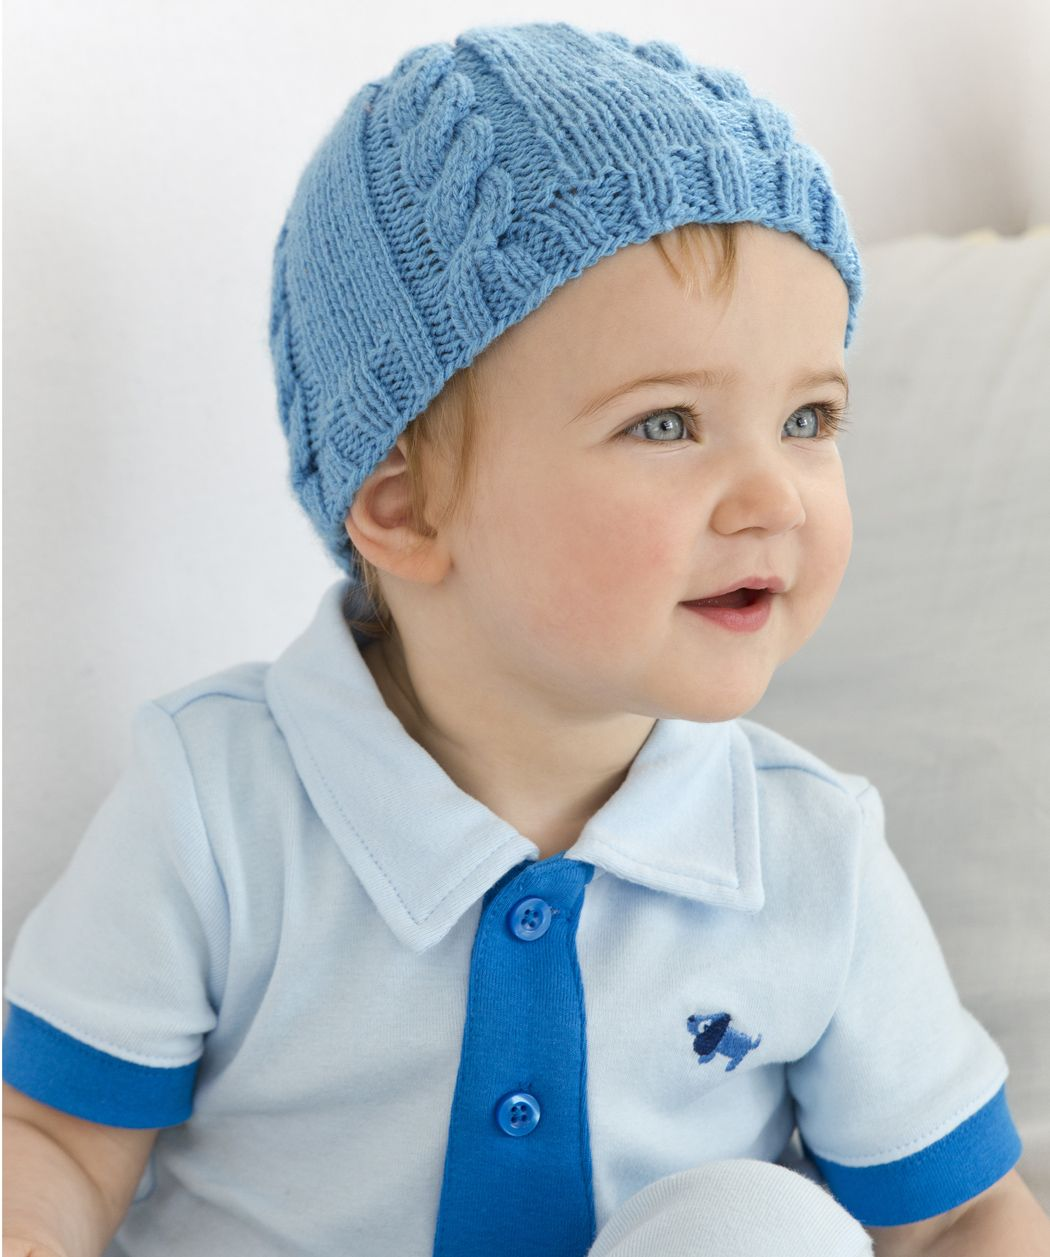 Cabled Baby Hat Free Knitting Pattern from Red Heart Yarns | Tejidos ...